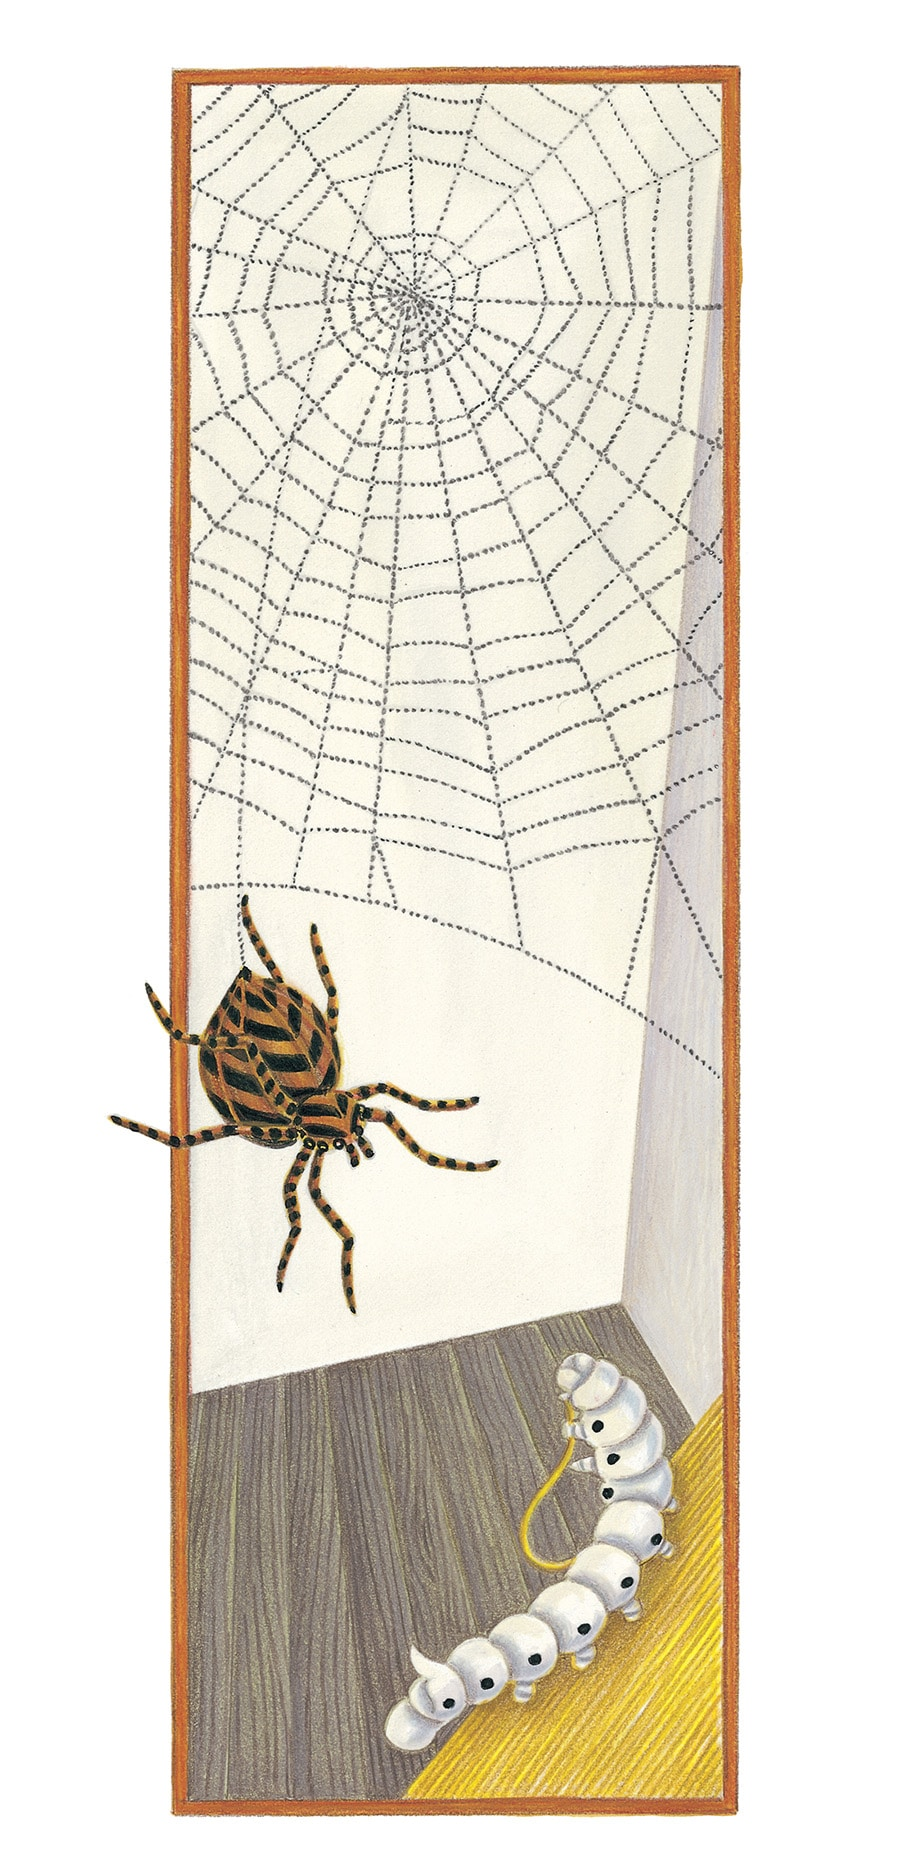 The Lion Classic Aesops Fables Gallery. Illustration 33 'The Silkworm and the Spider' (Pixel dimensions available w1131 x h3117)